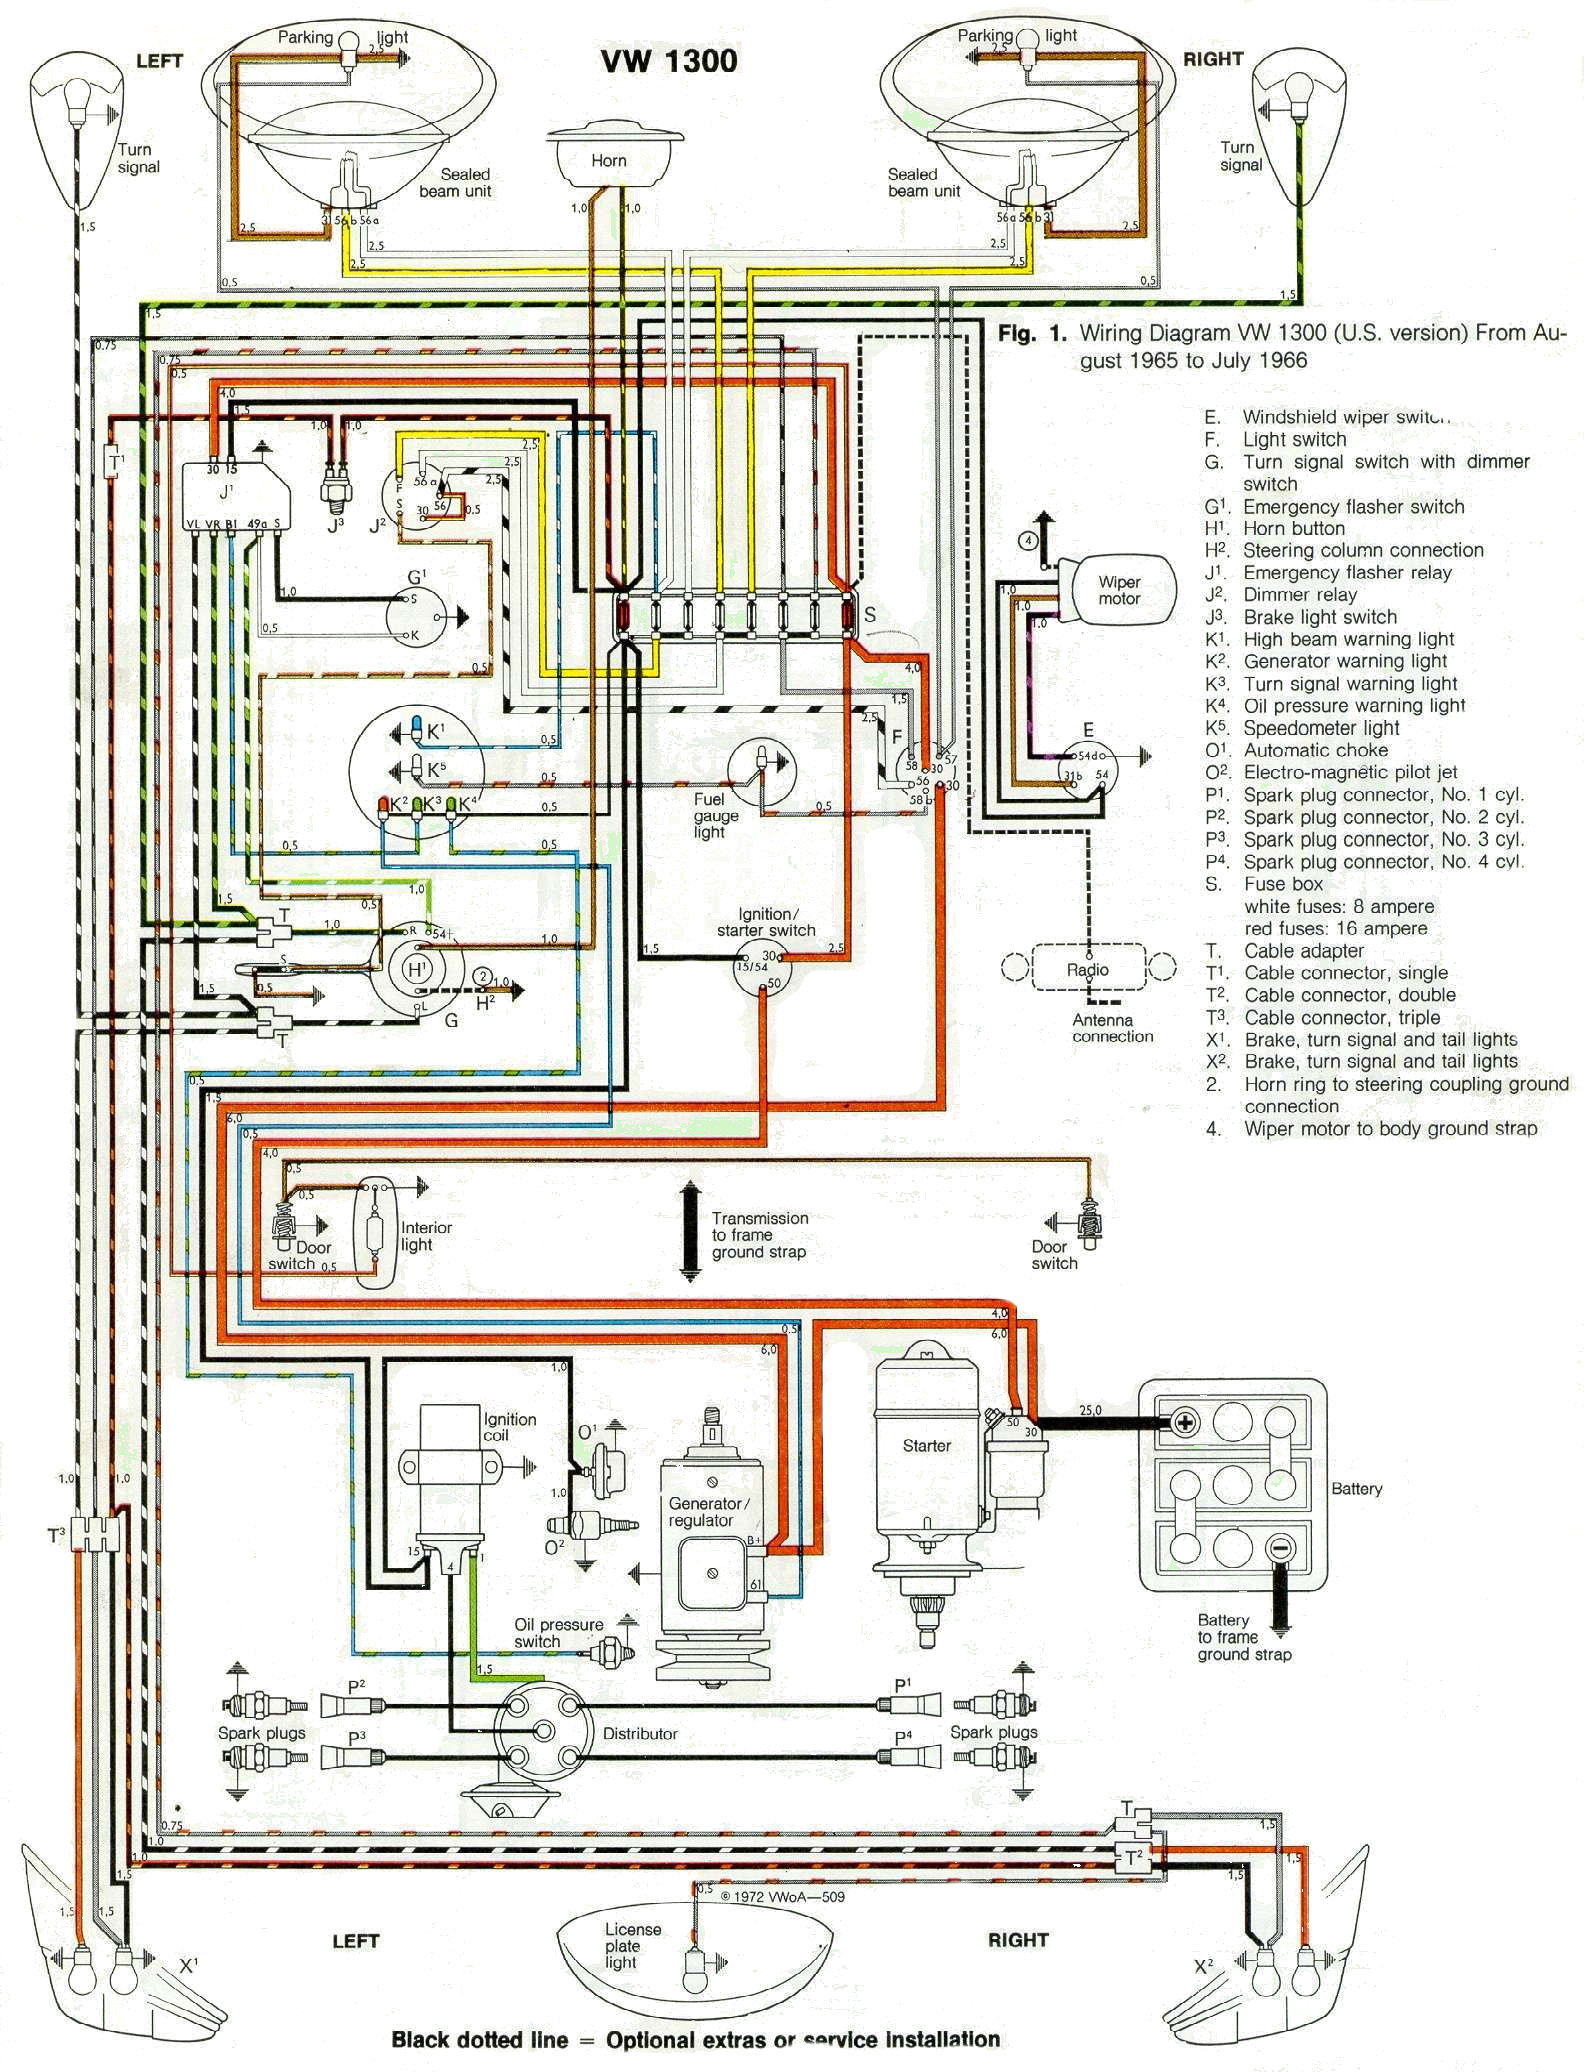 2000 Vw Beetle Engine Wiring Diagram Reinvent Your Schematic Transmission Gmc Sonoma 2 Schematics Diagrams U2022 Rh Parntesis Co 1998 Fuse Fluid